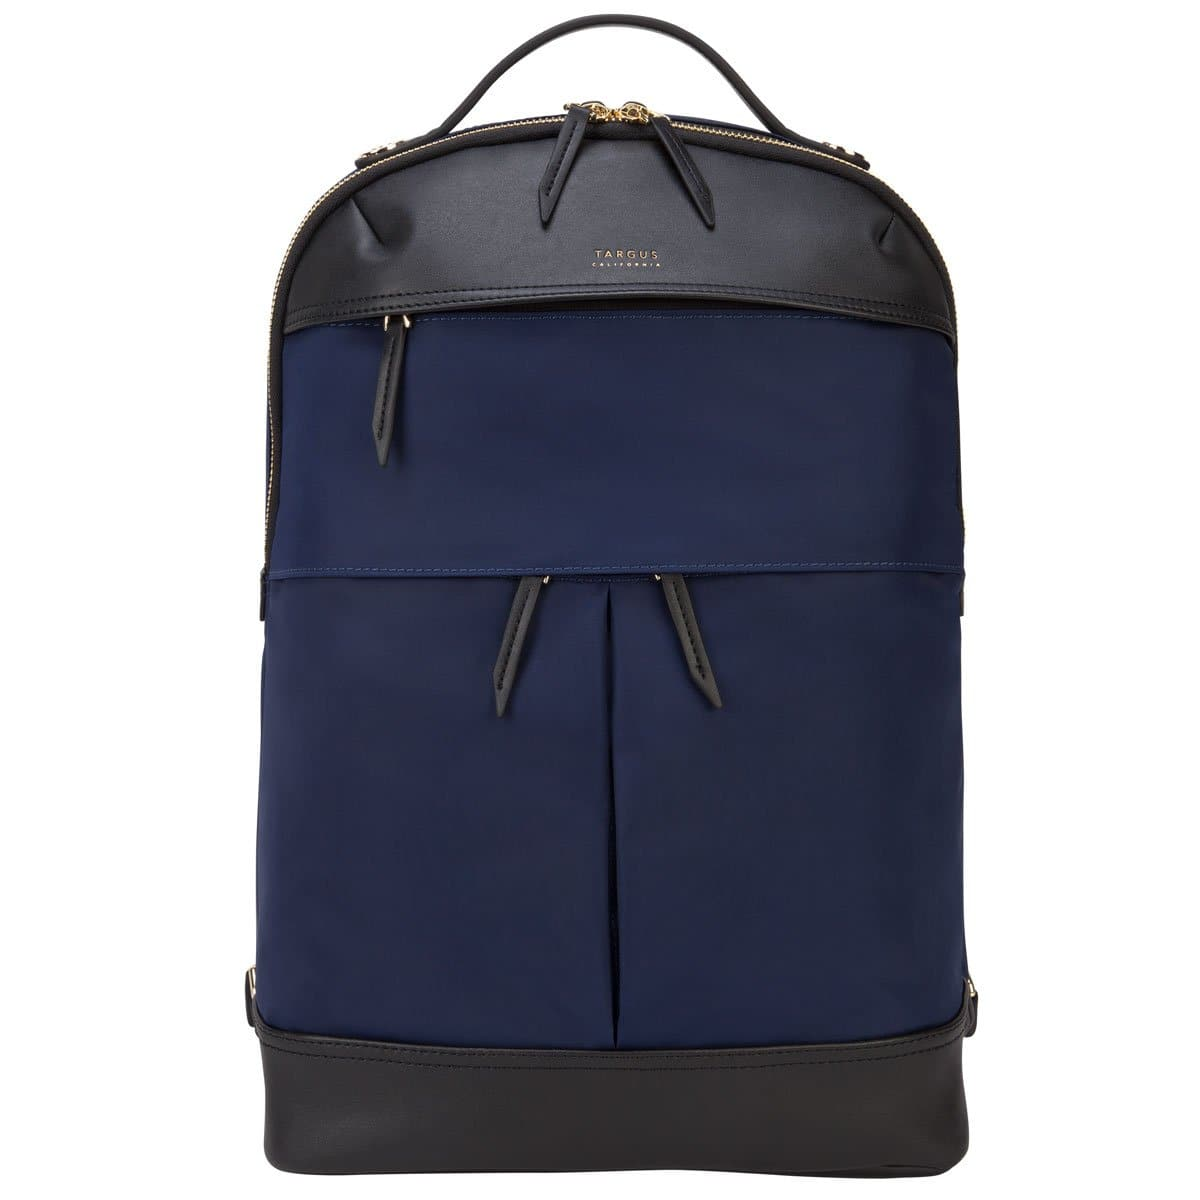 """68% OFF 15"""" Newport Backpack (Navy) + FS for $33.87"""